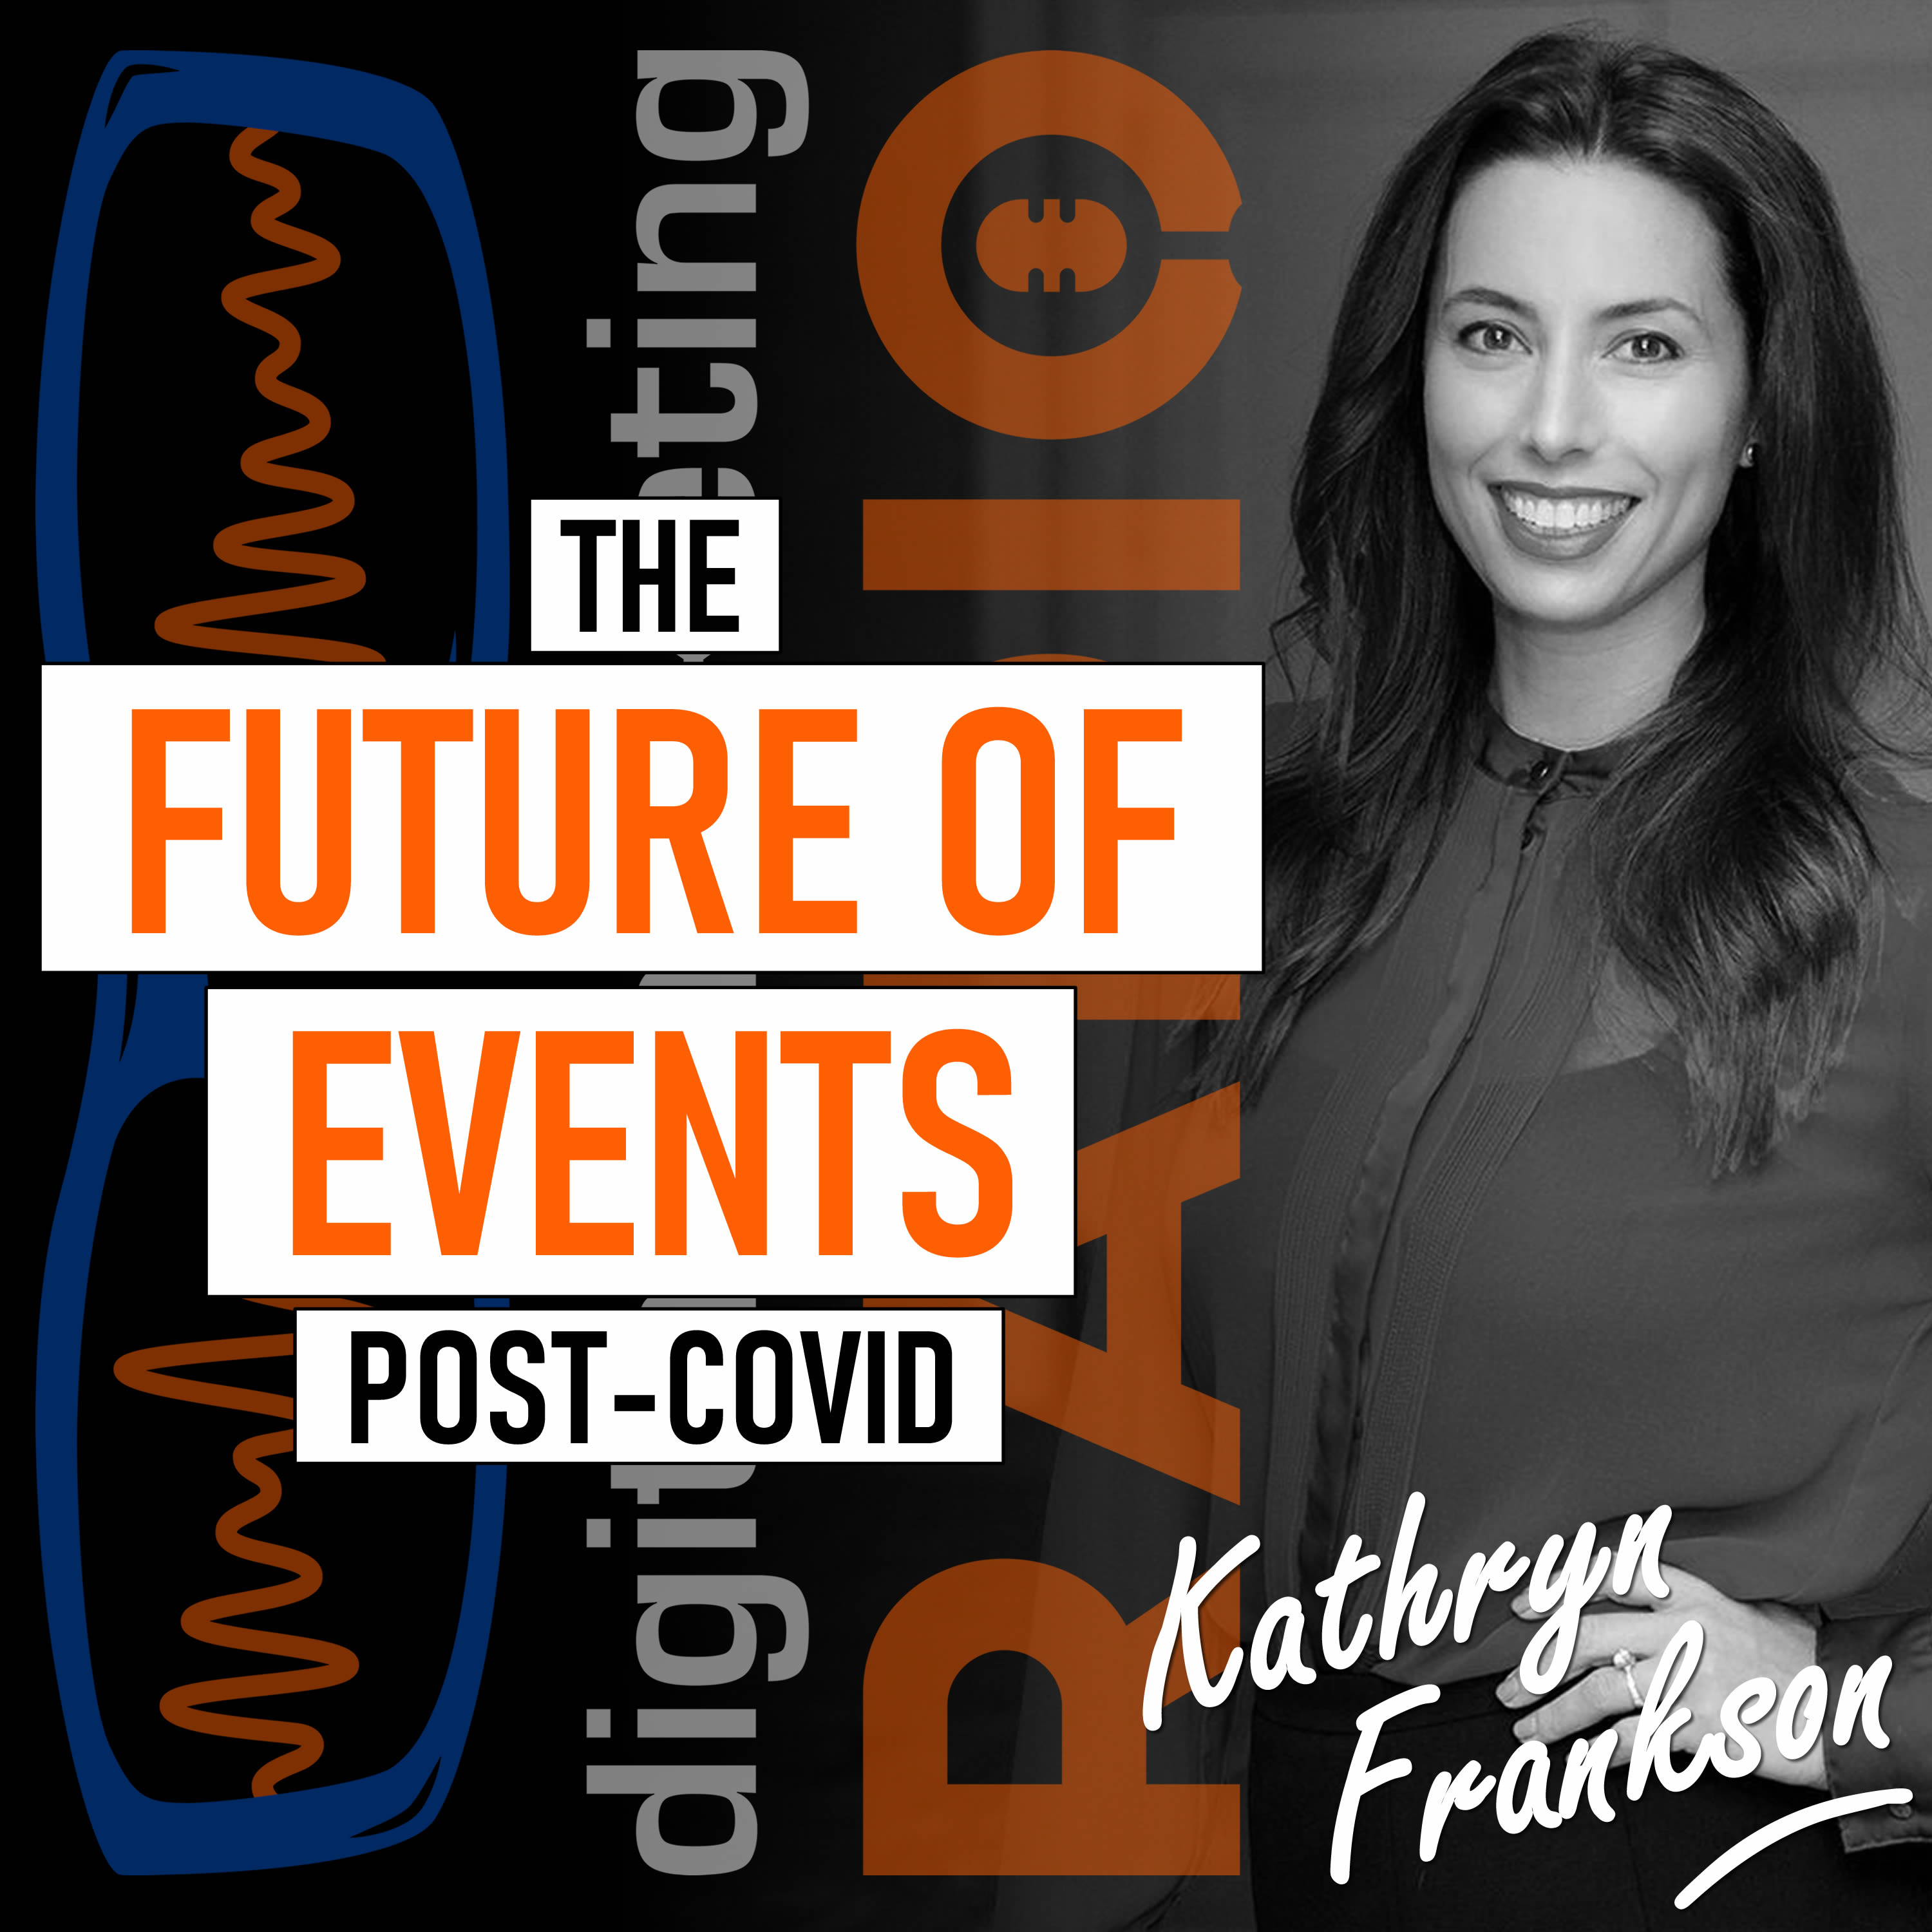 The Future of Events… Post-COVID - with Kathryn Frankson from Informa